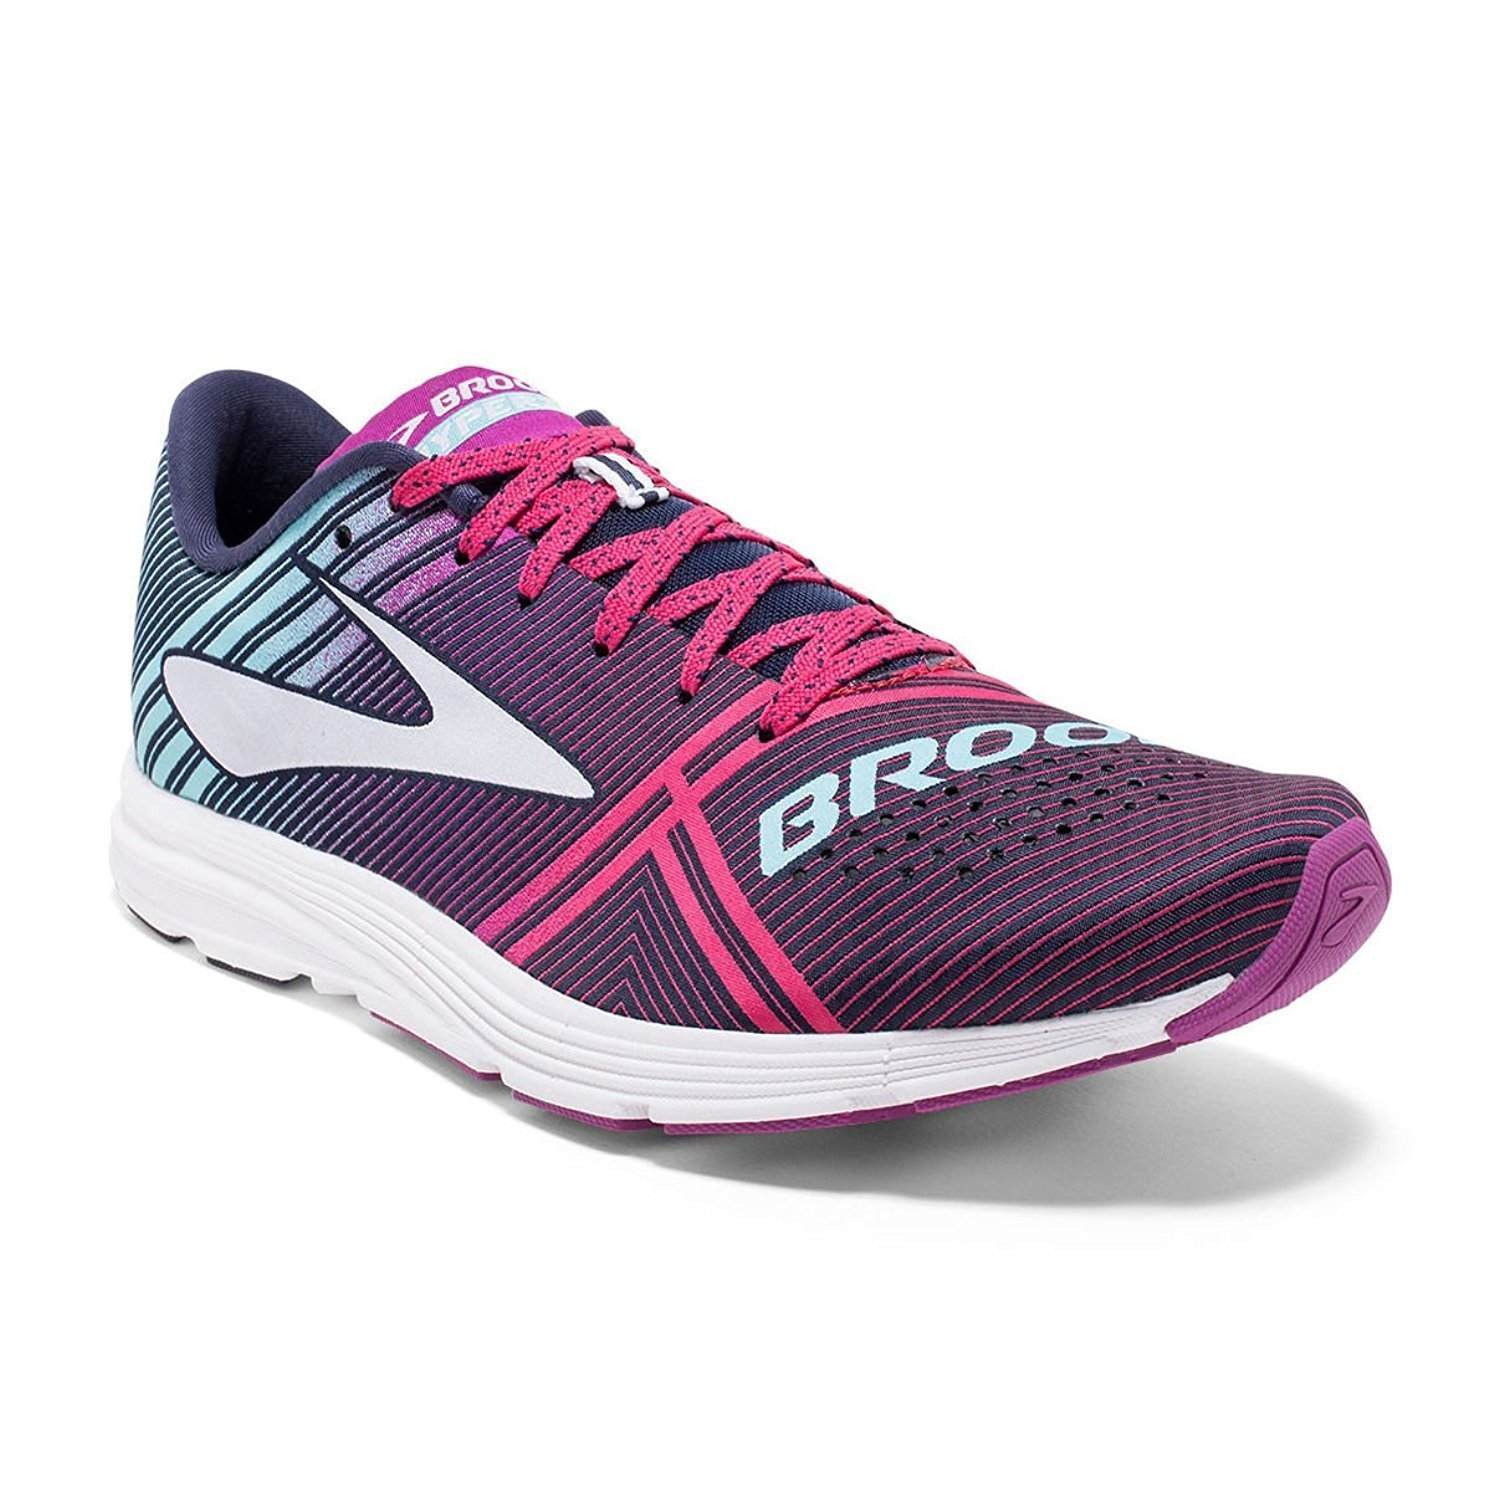 Brooks Womens Hyperion B01GF7ICZG 7.5 B(M) US|Peacoat/Purple Wine/Aruba Blue